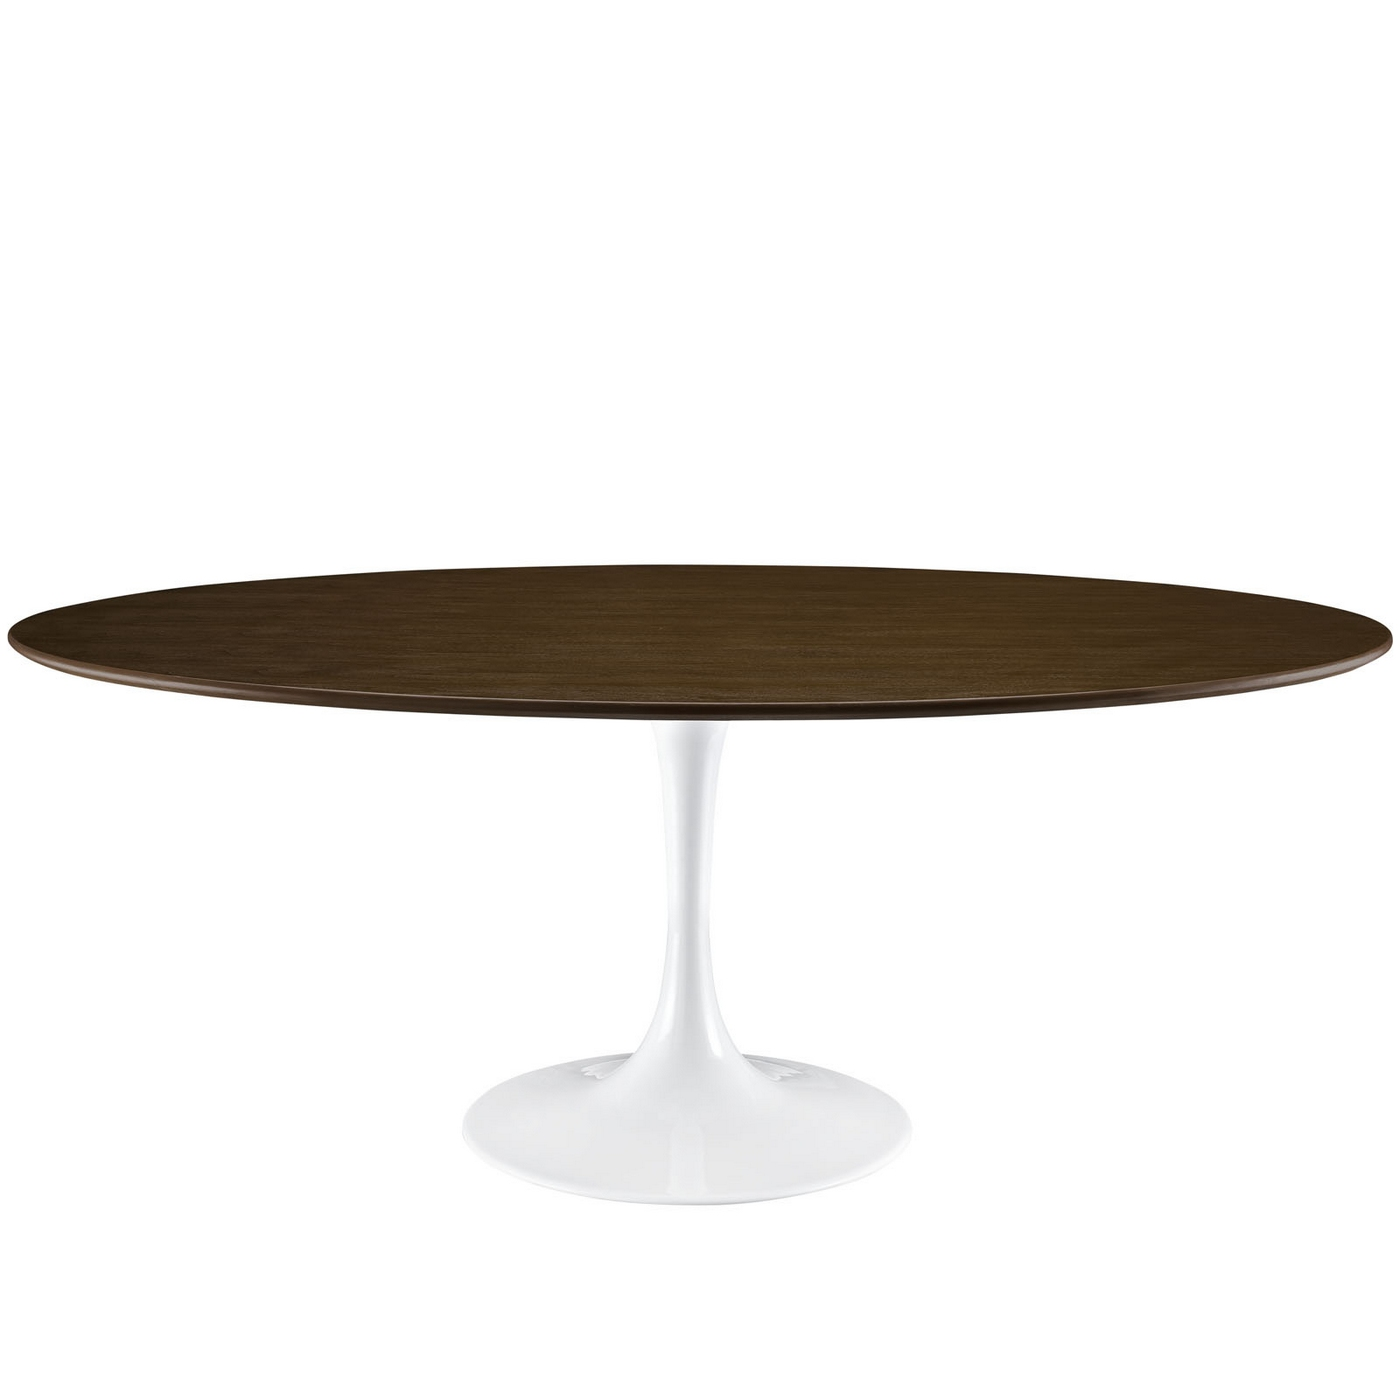 Lippa modern 78 round walnut dining table with lacquered for Contemporary round dining table